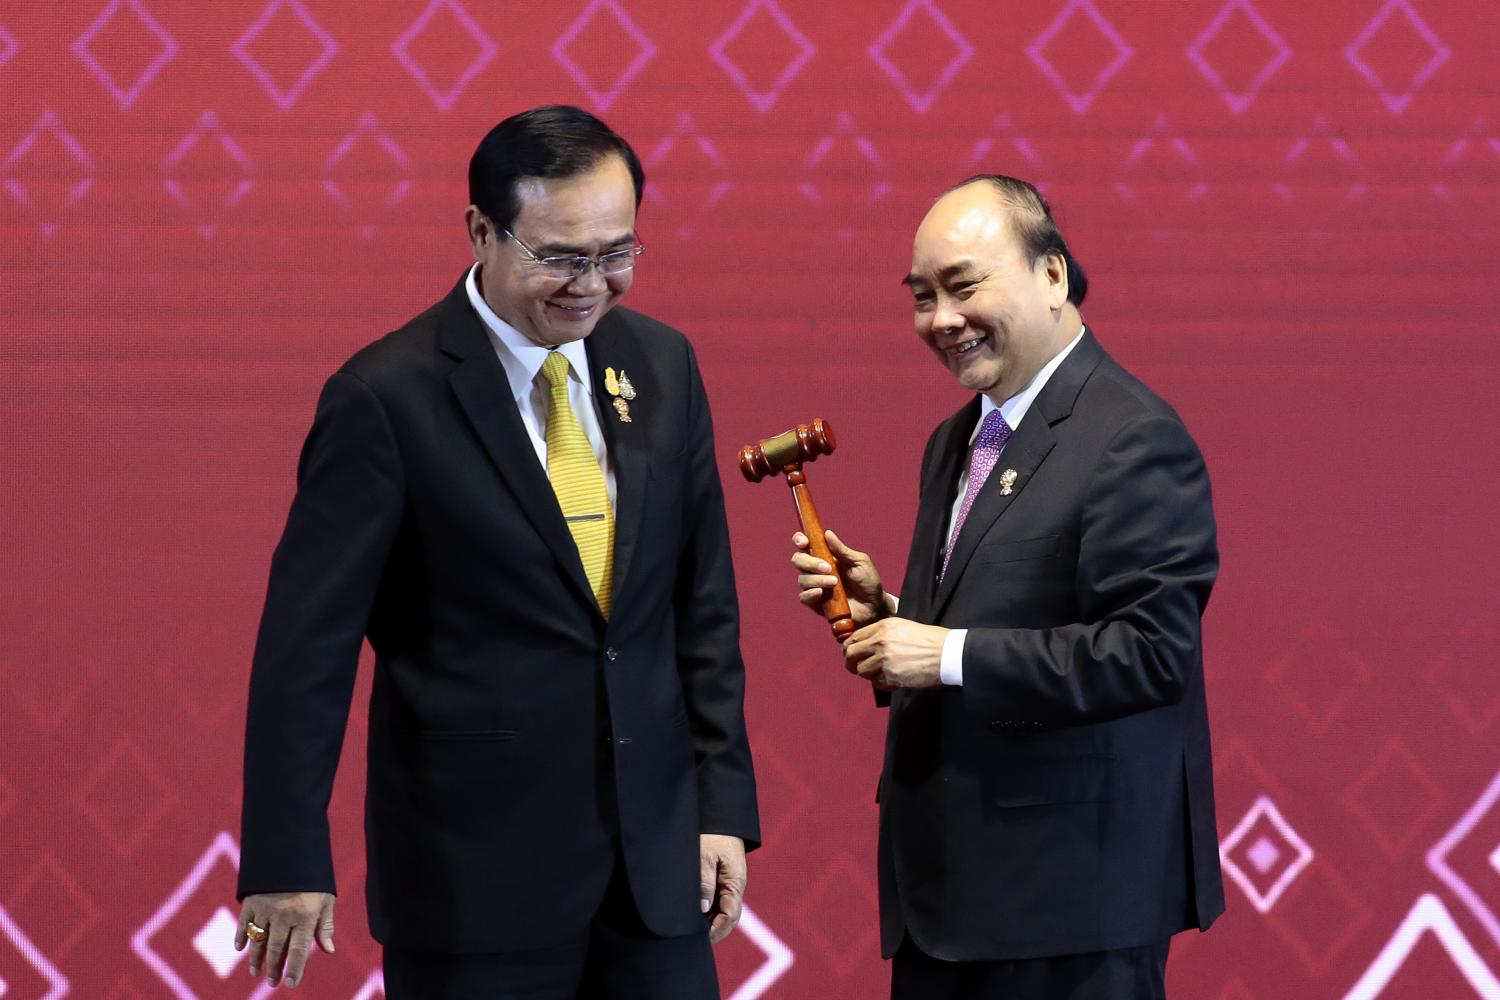 Prime Minister Prayut Chan-o-cha hands a gavel — the symbol of the Asean chairmanship — to Vietnam Prime Minister Nguyen Xuan Phuc.Patipat Janthong